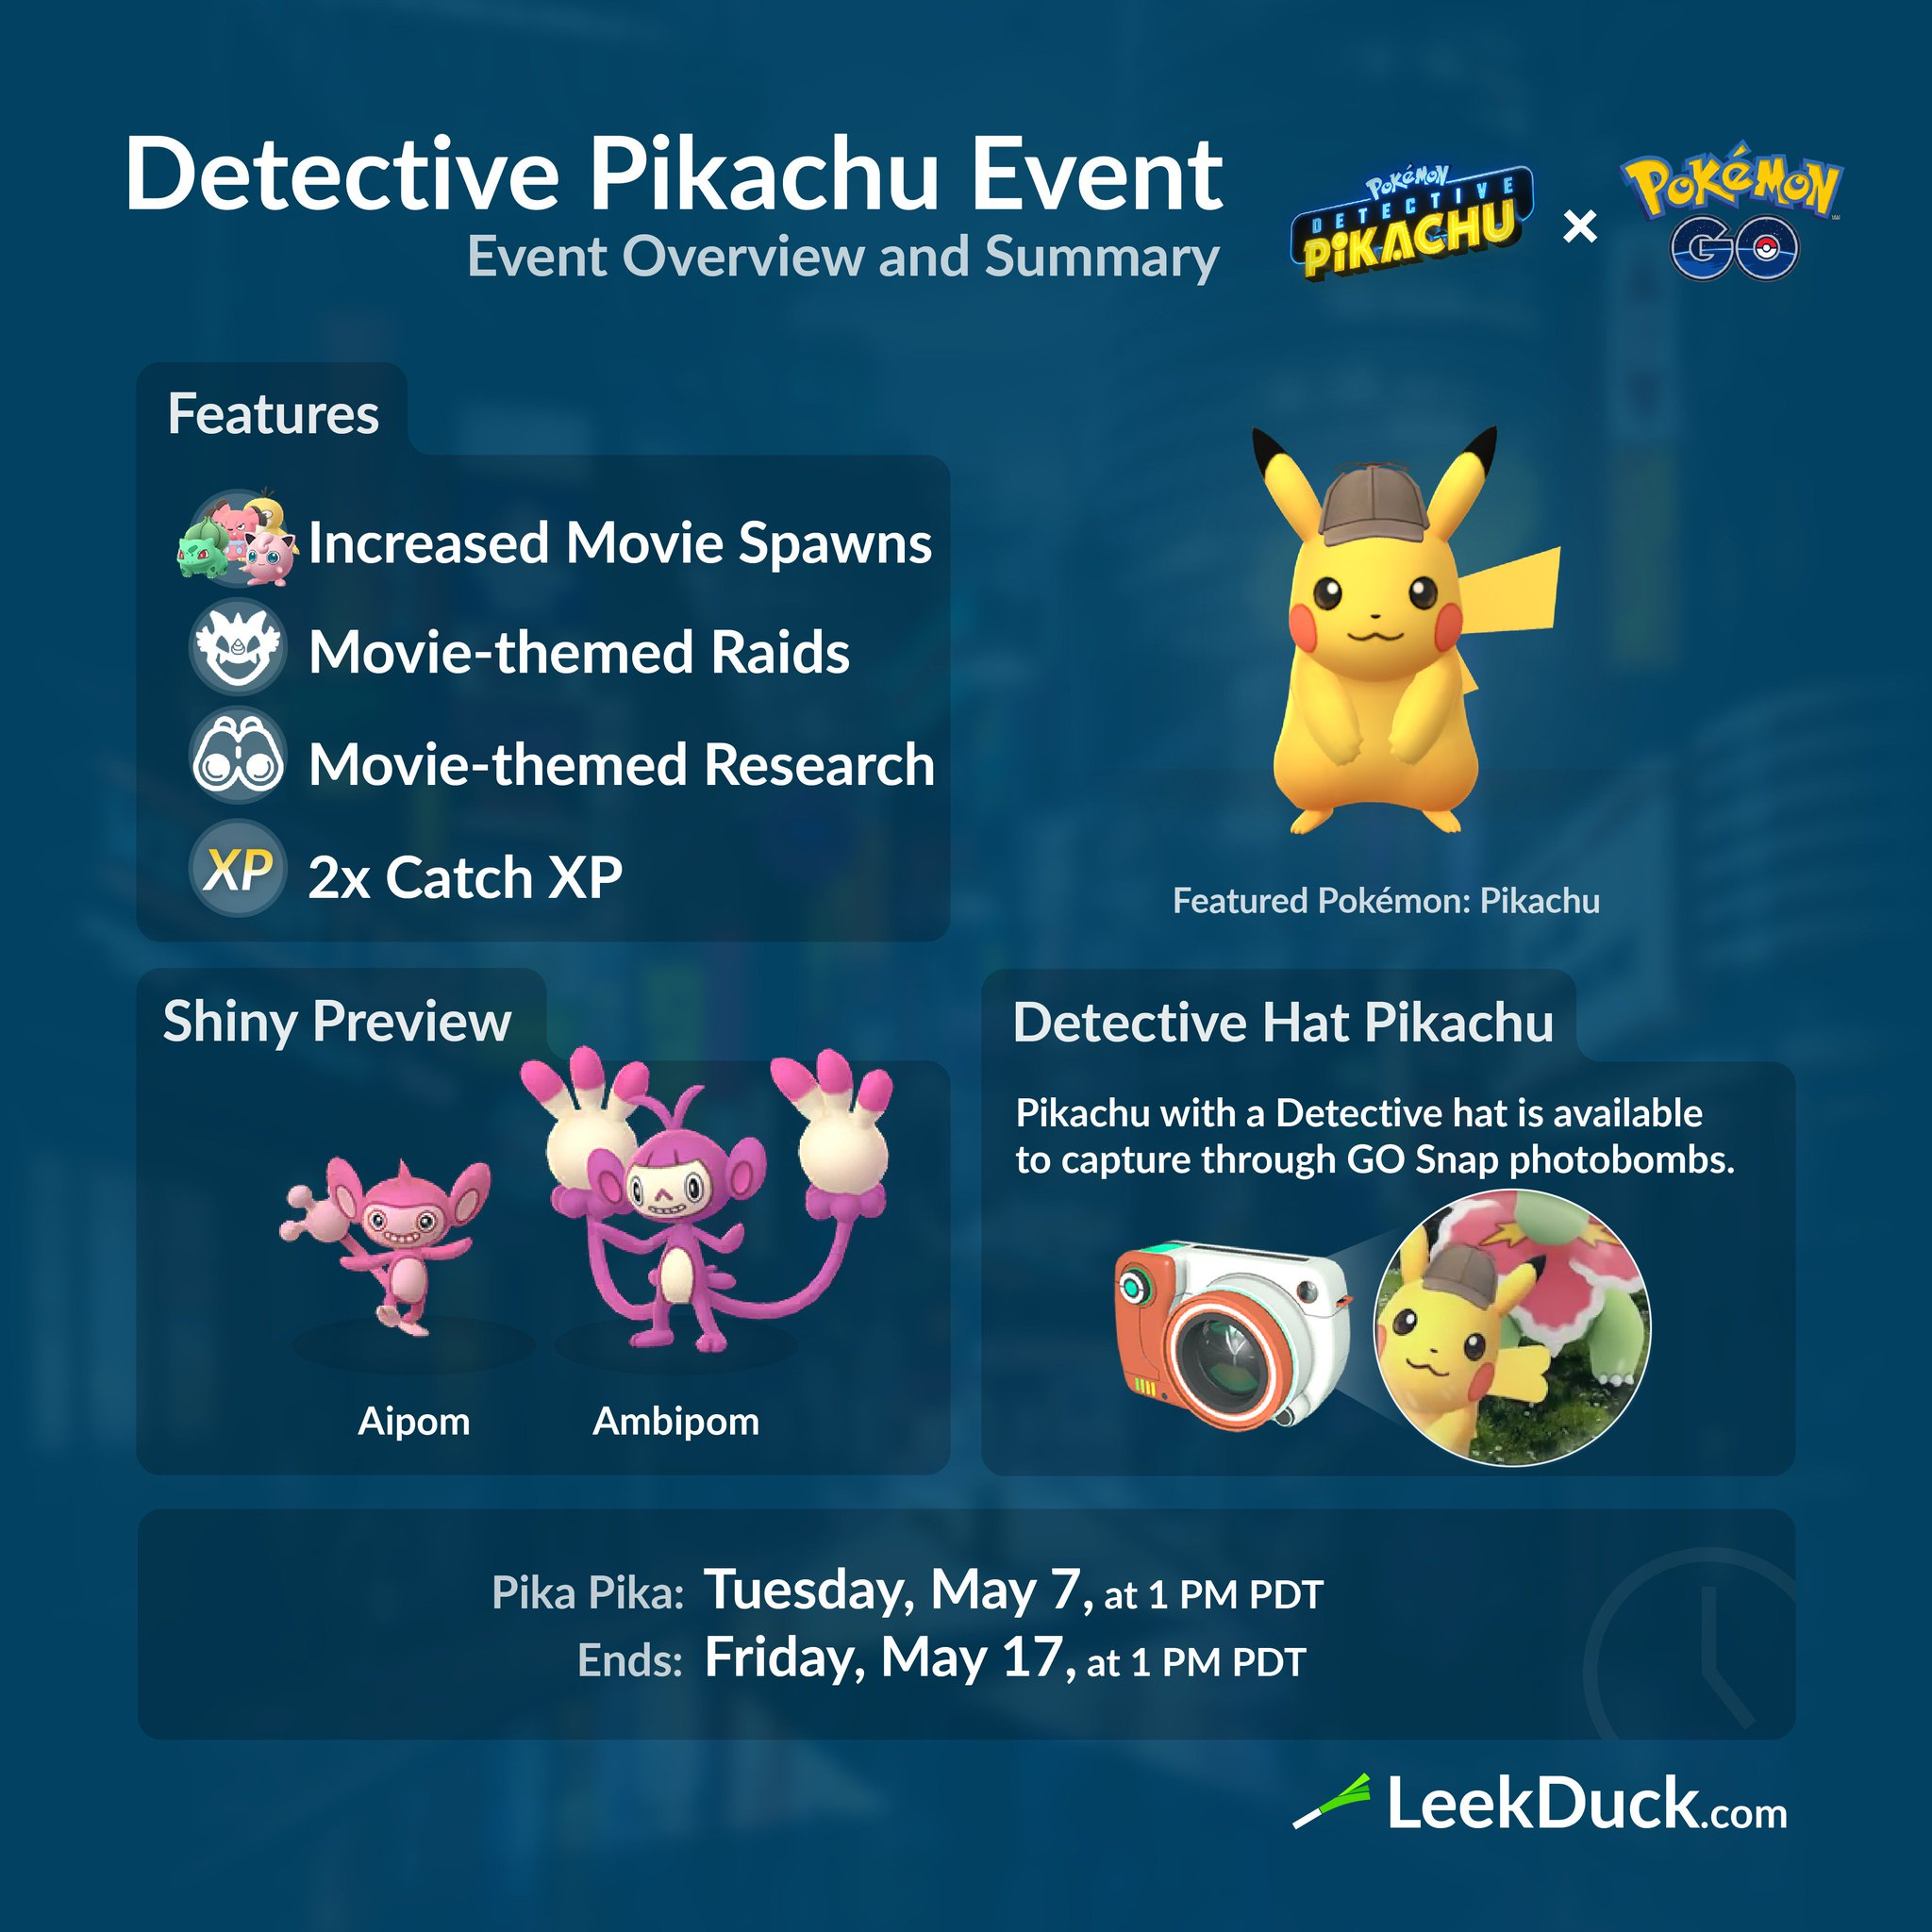 Leek Duck Nyc On Twitter The Detective Pikachu Event In Pokemon Go Begins Tomorrow Here S A Summary Of The Event Detectivepikachu Pikapika Https T Co